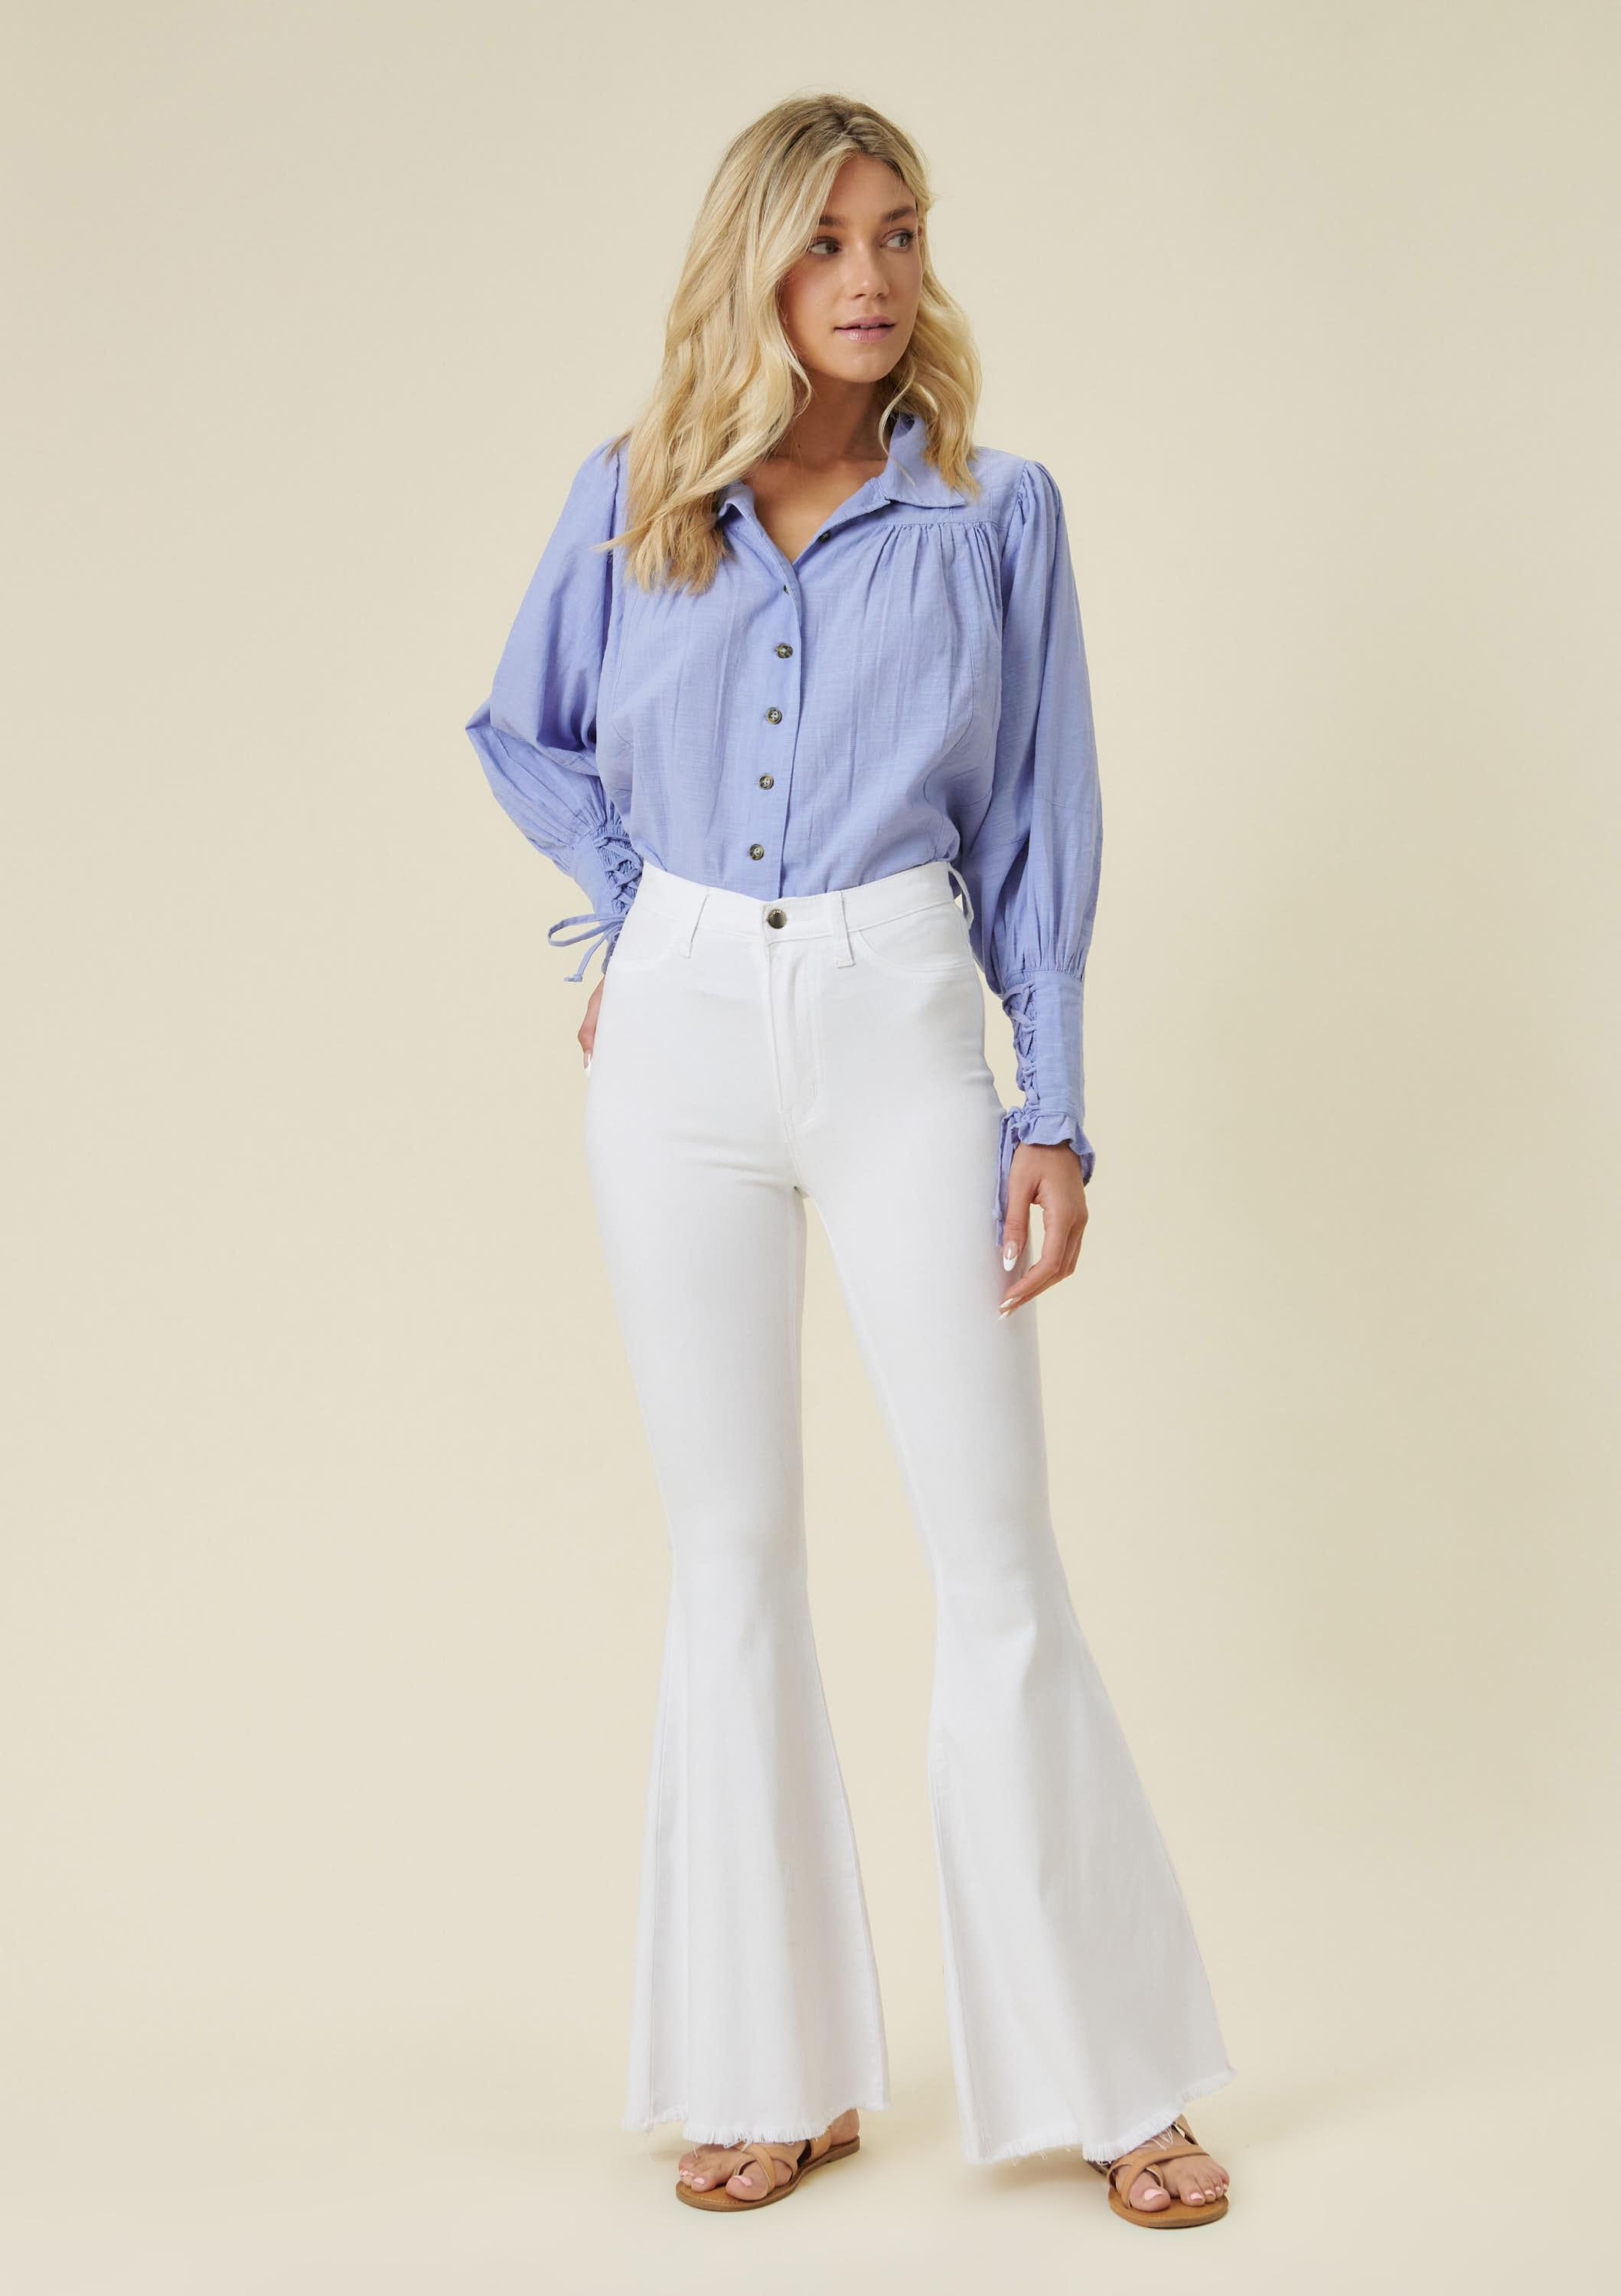 Down on Earth Flare Jeans